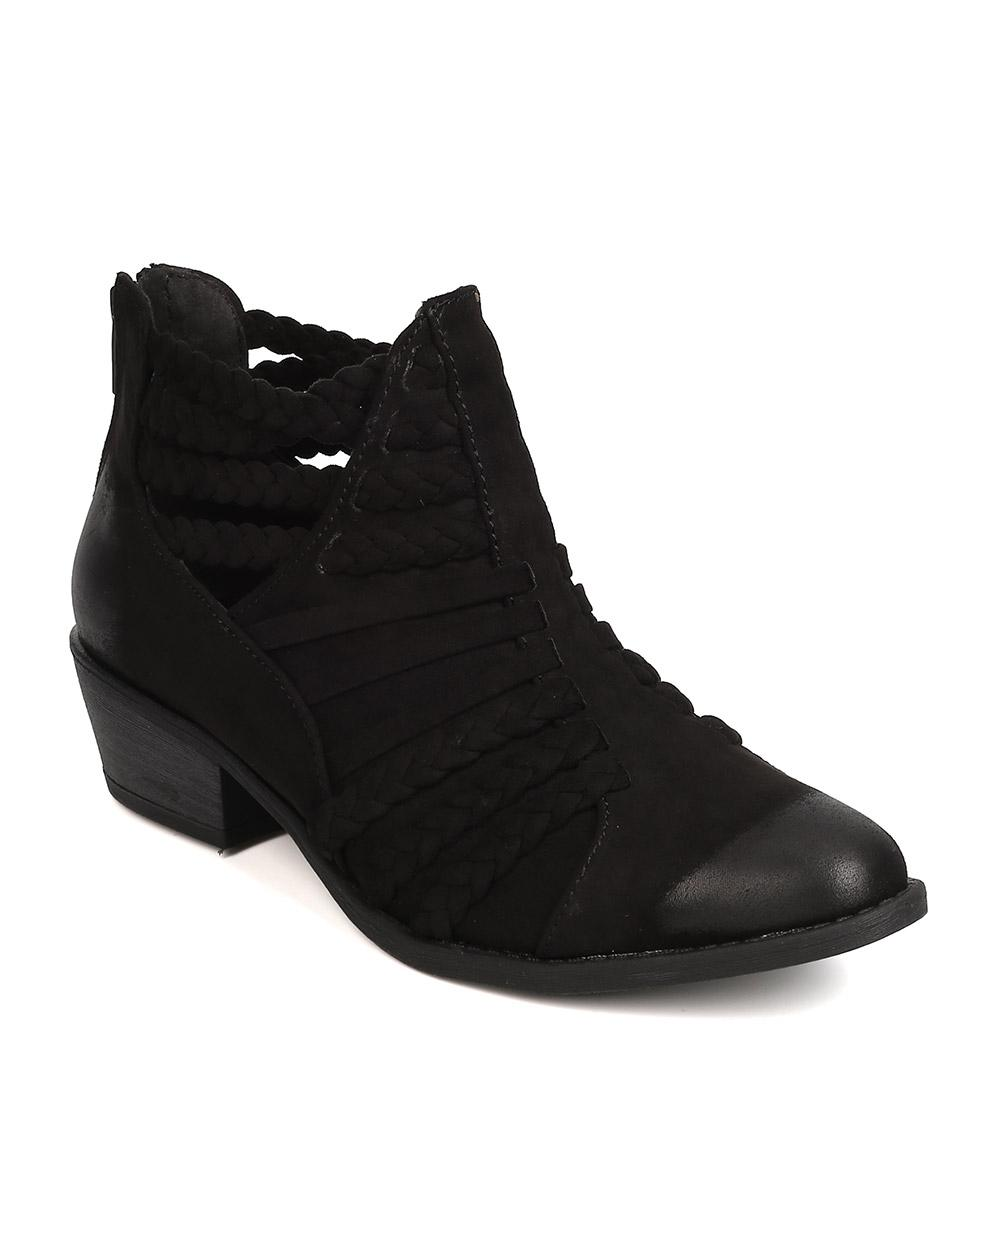 qupid sochi 87 faux suede ankle black boots on tradesy